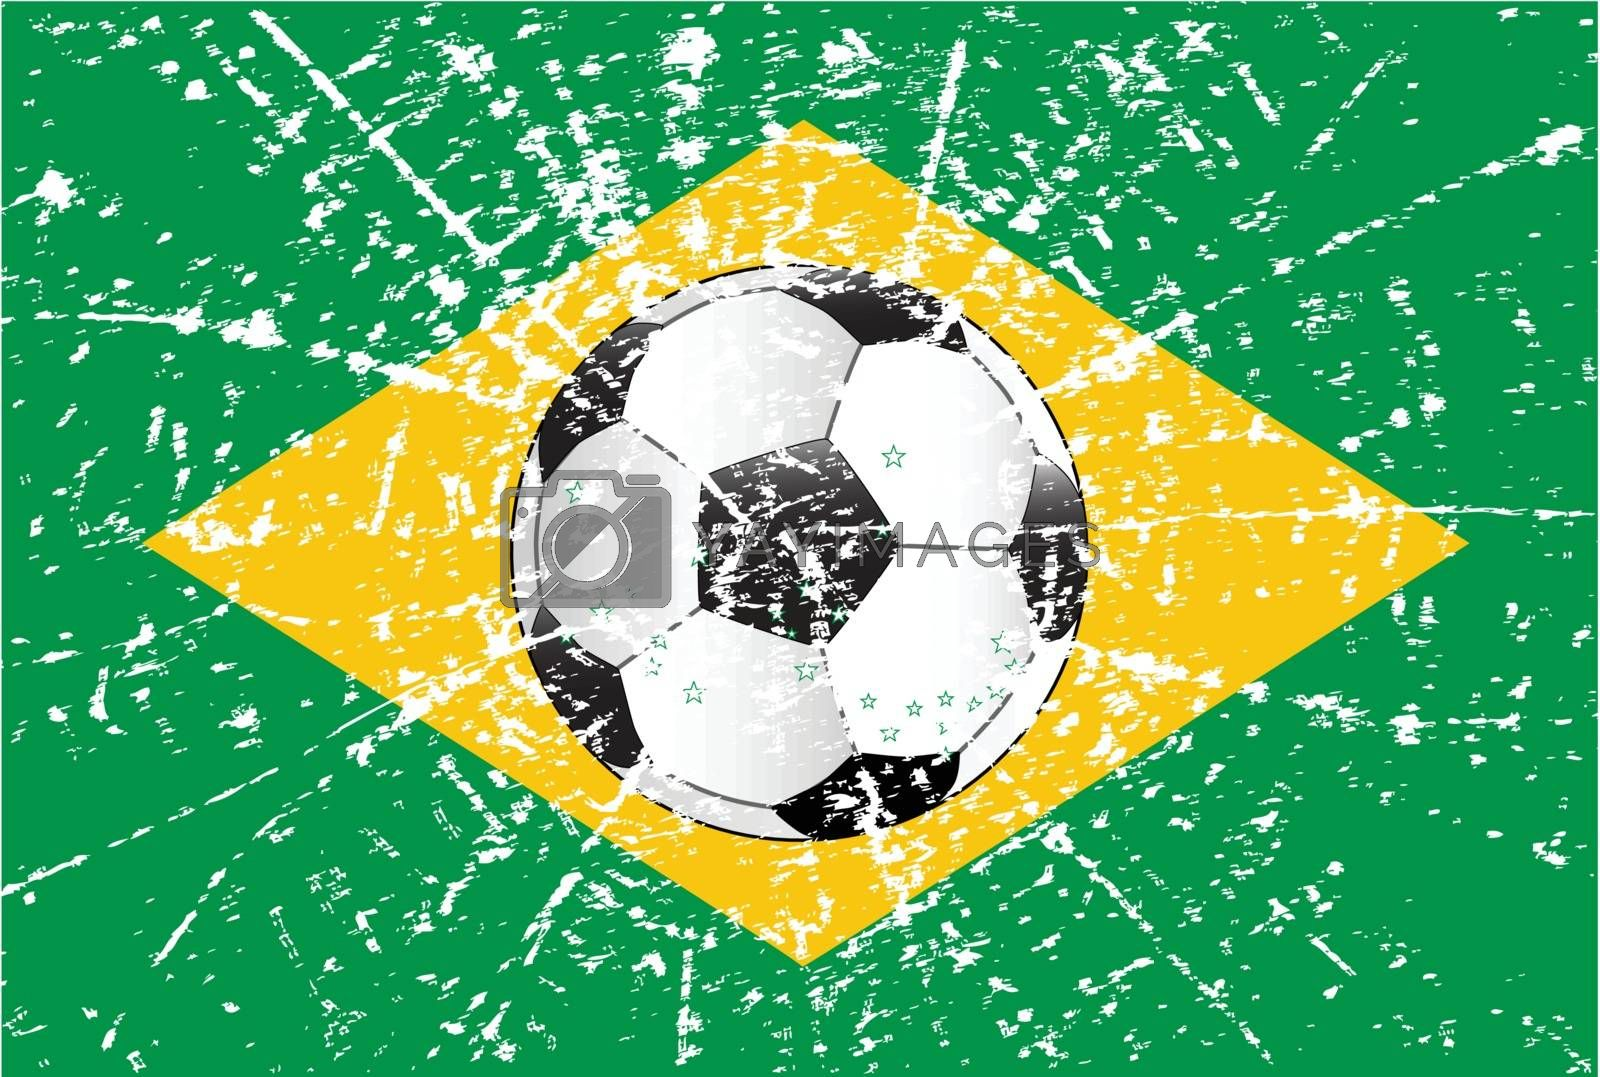 The flag of Brazil with a football